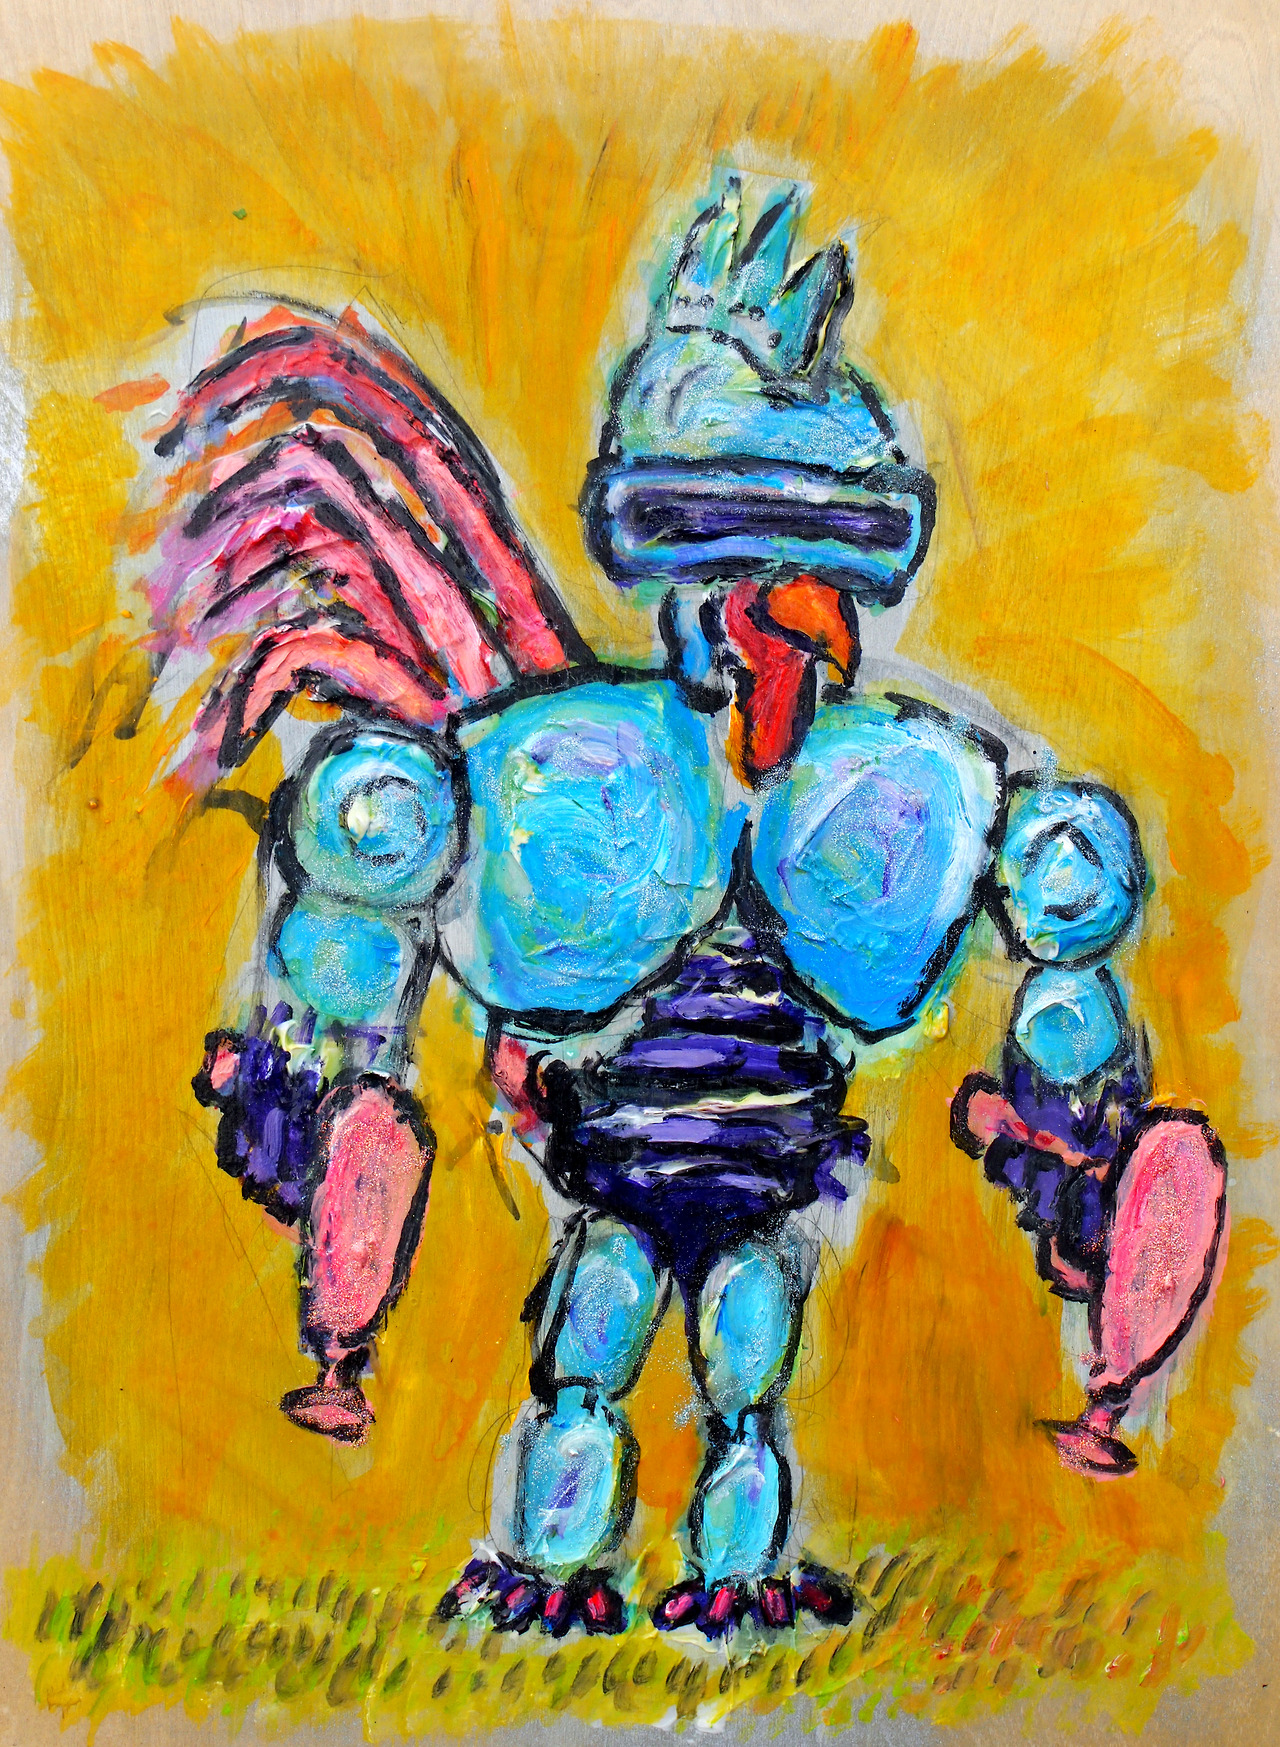 "Robocock.    18"" x 24"" - acrylic paint, pencil, glitter, polyurethane on birch panel.   I will be showing this piece for the first time at:    https://www.facebook.com/events/610822628960324/     The opening is tomorrow evening. I hope you all can make it."